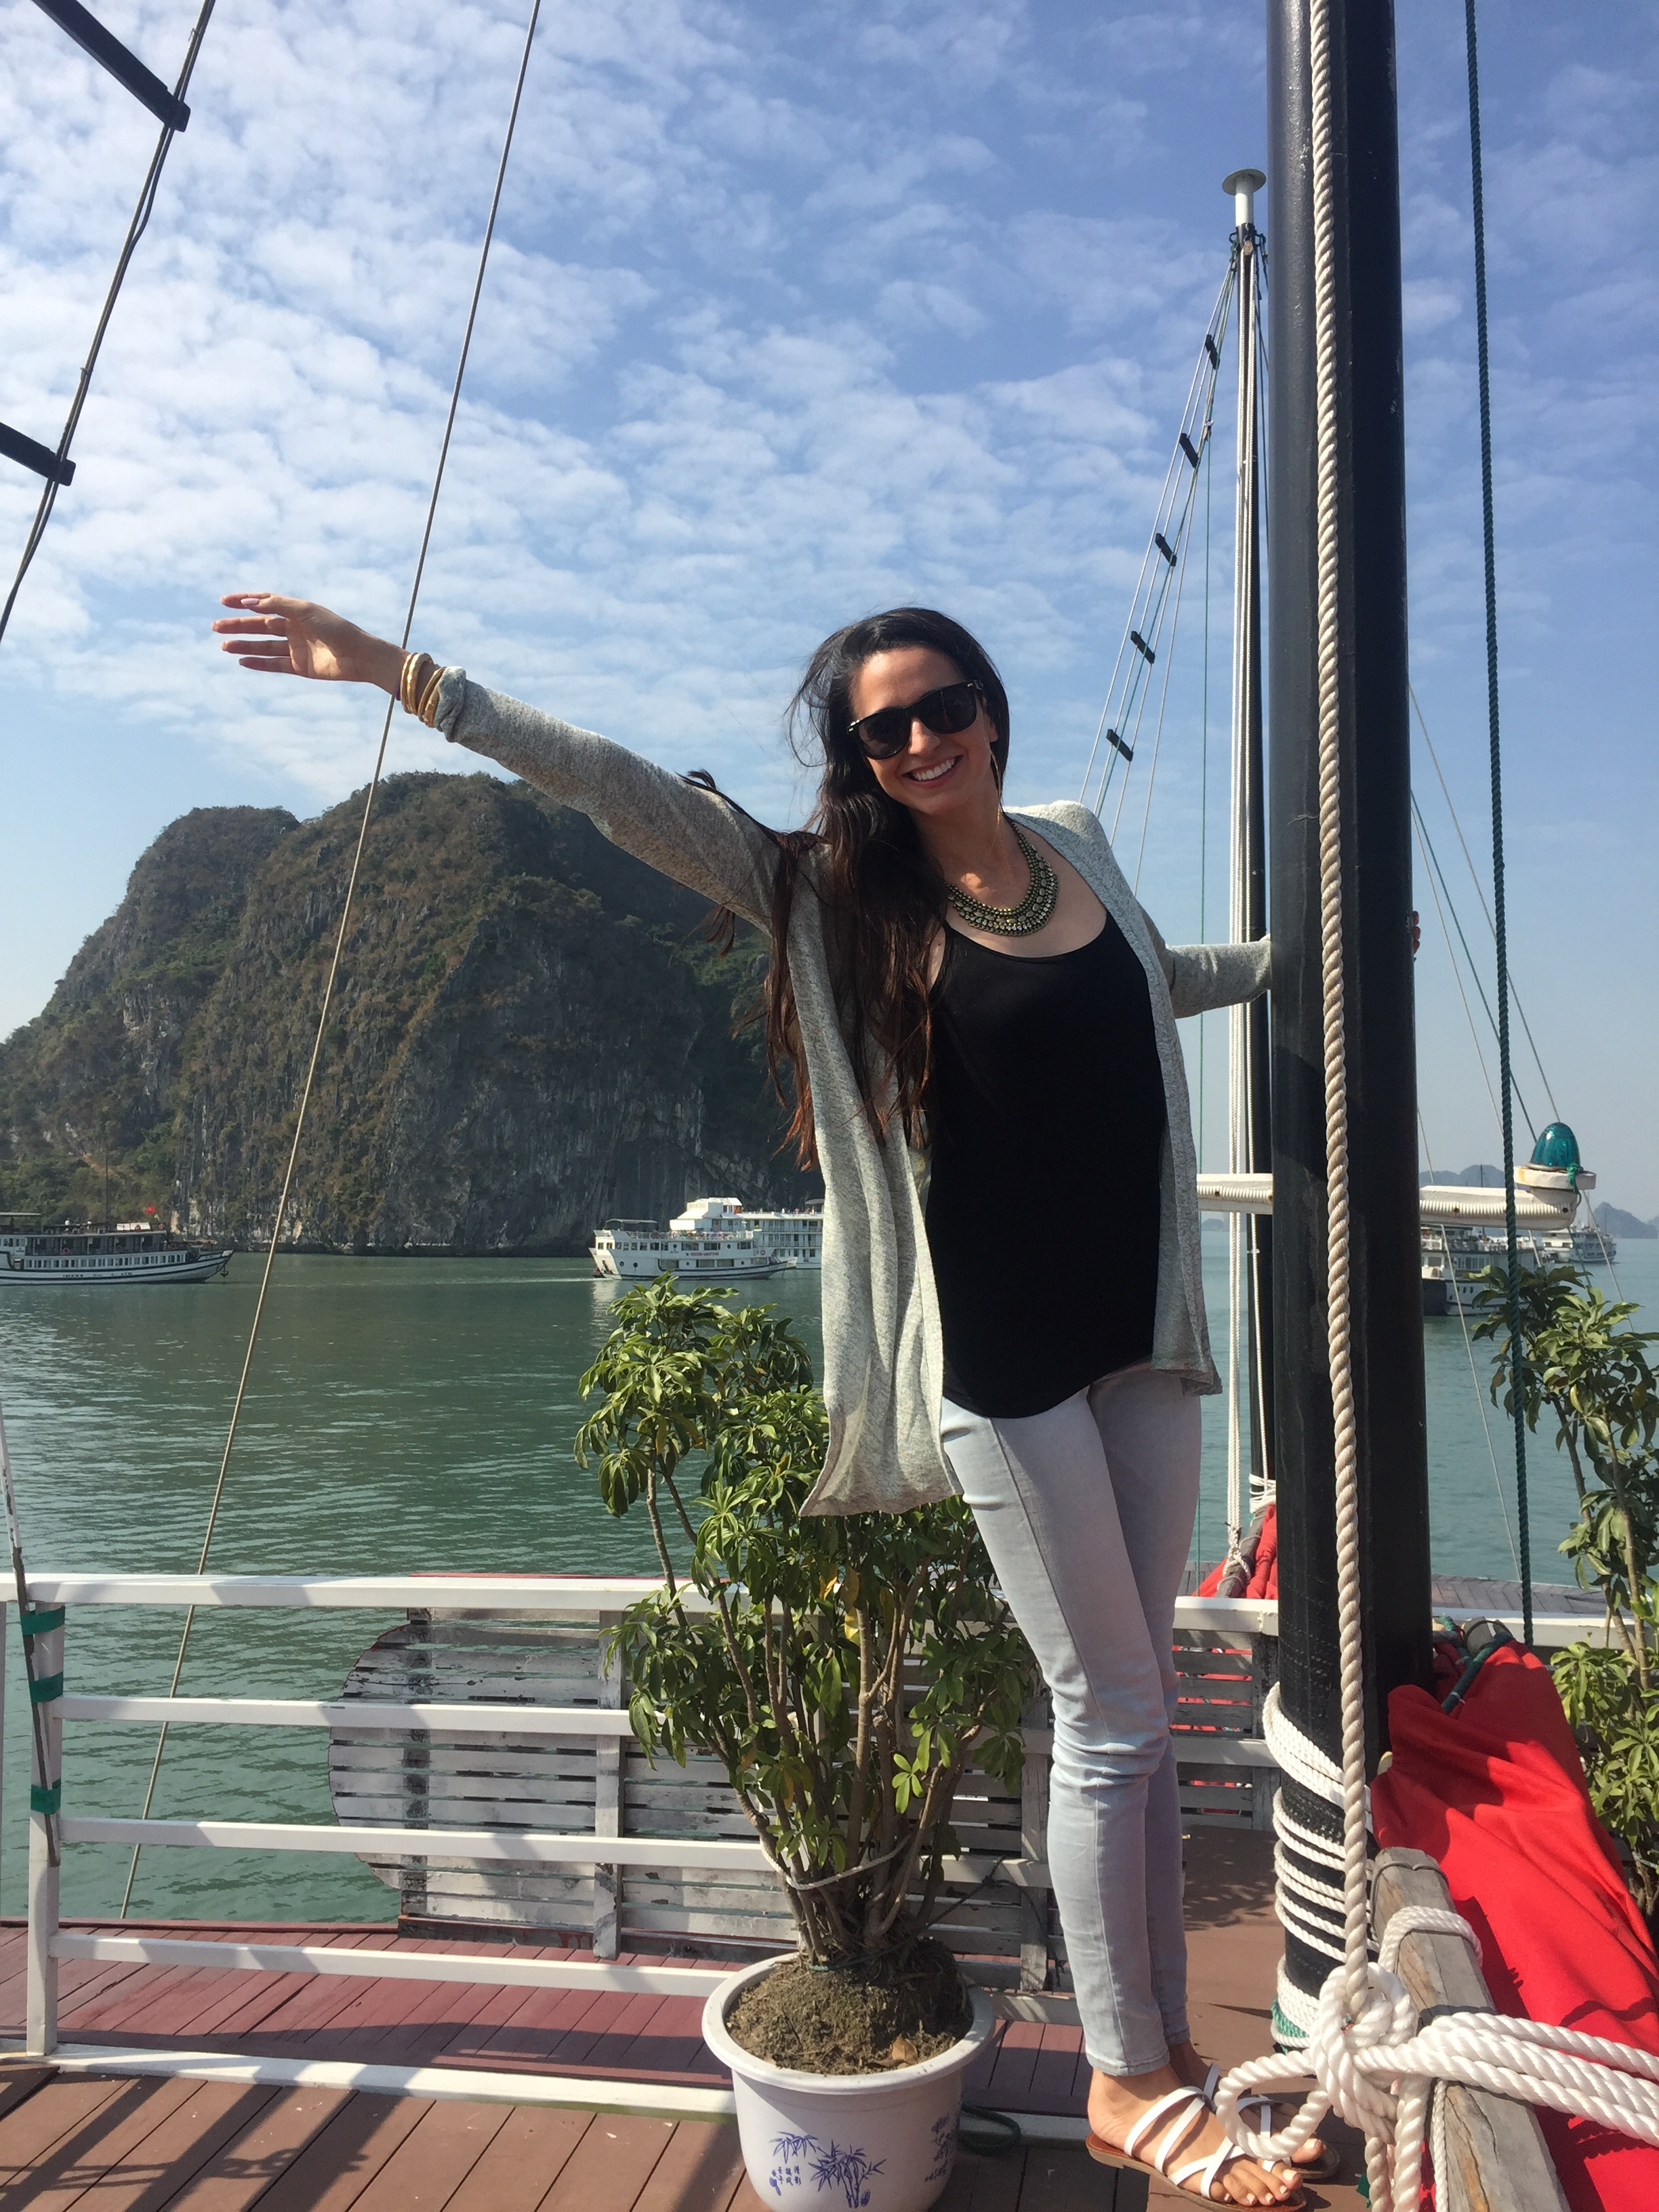 can't handle the beauty that is Halong Bay. a beauty so disorienting that I do the weirdest poses to try & compete.